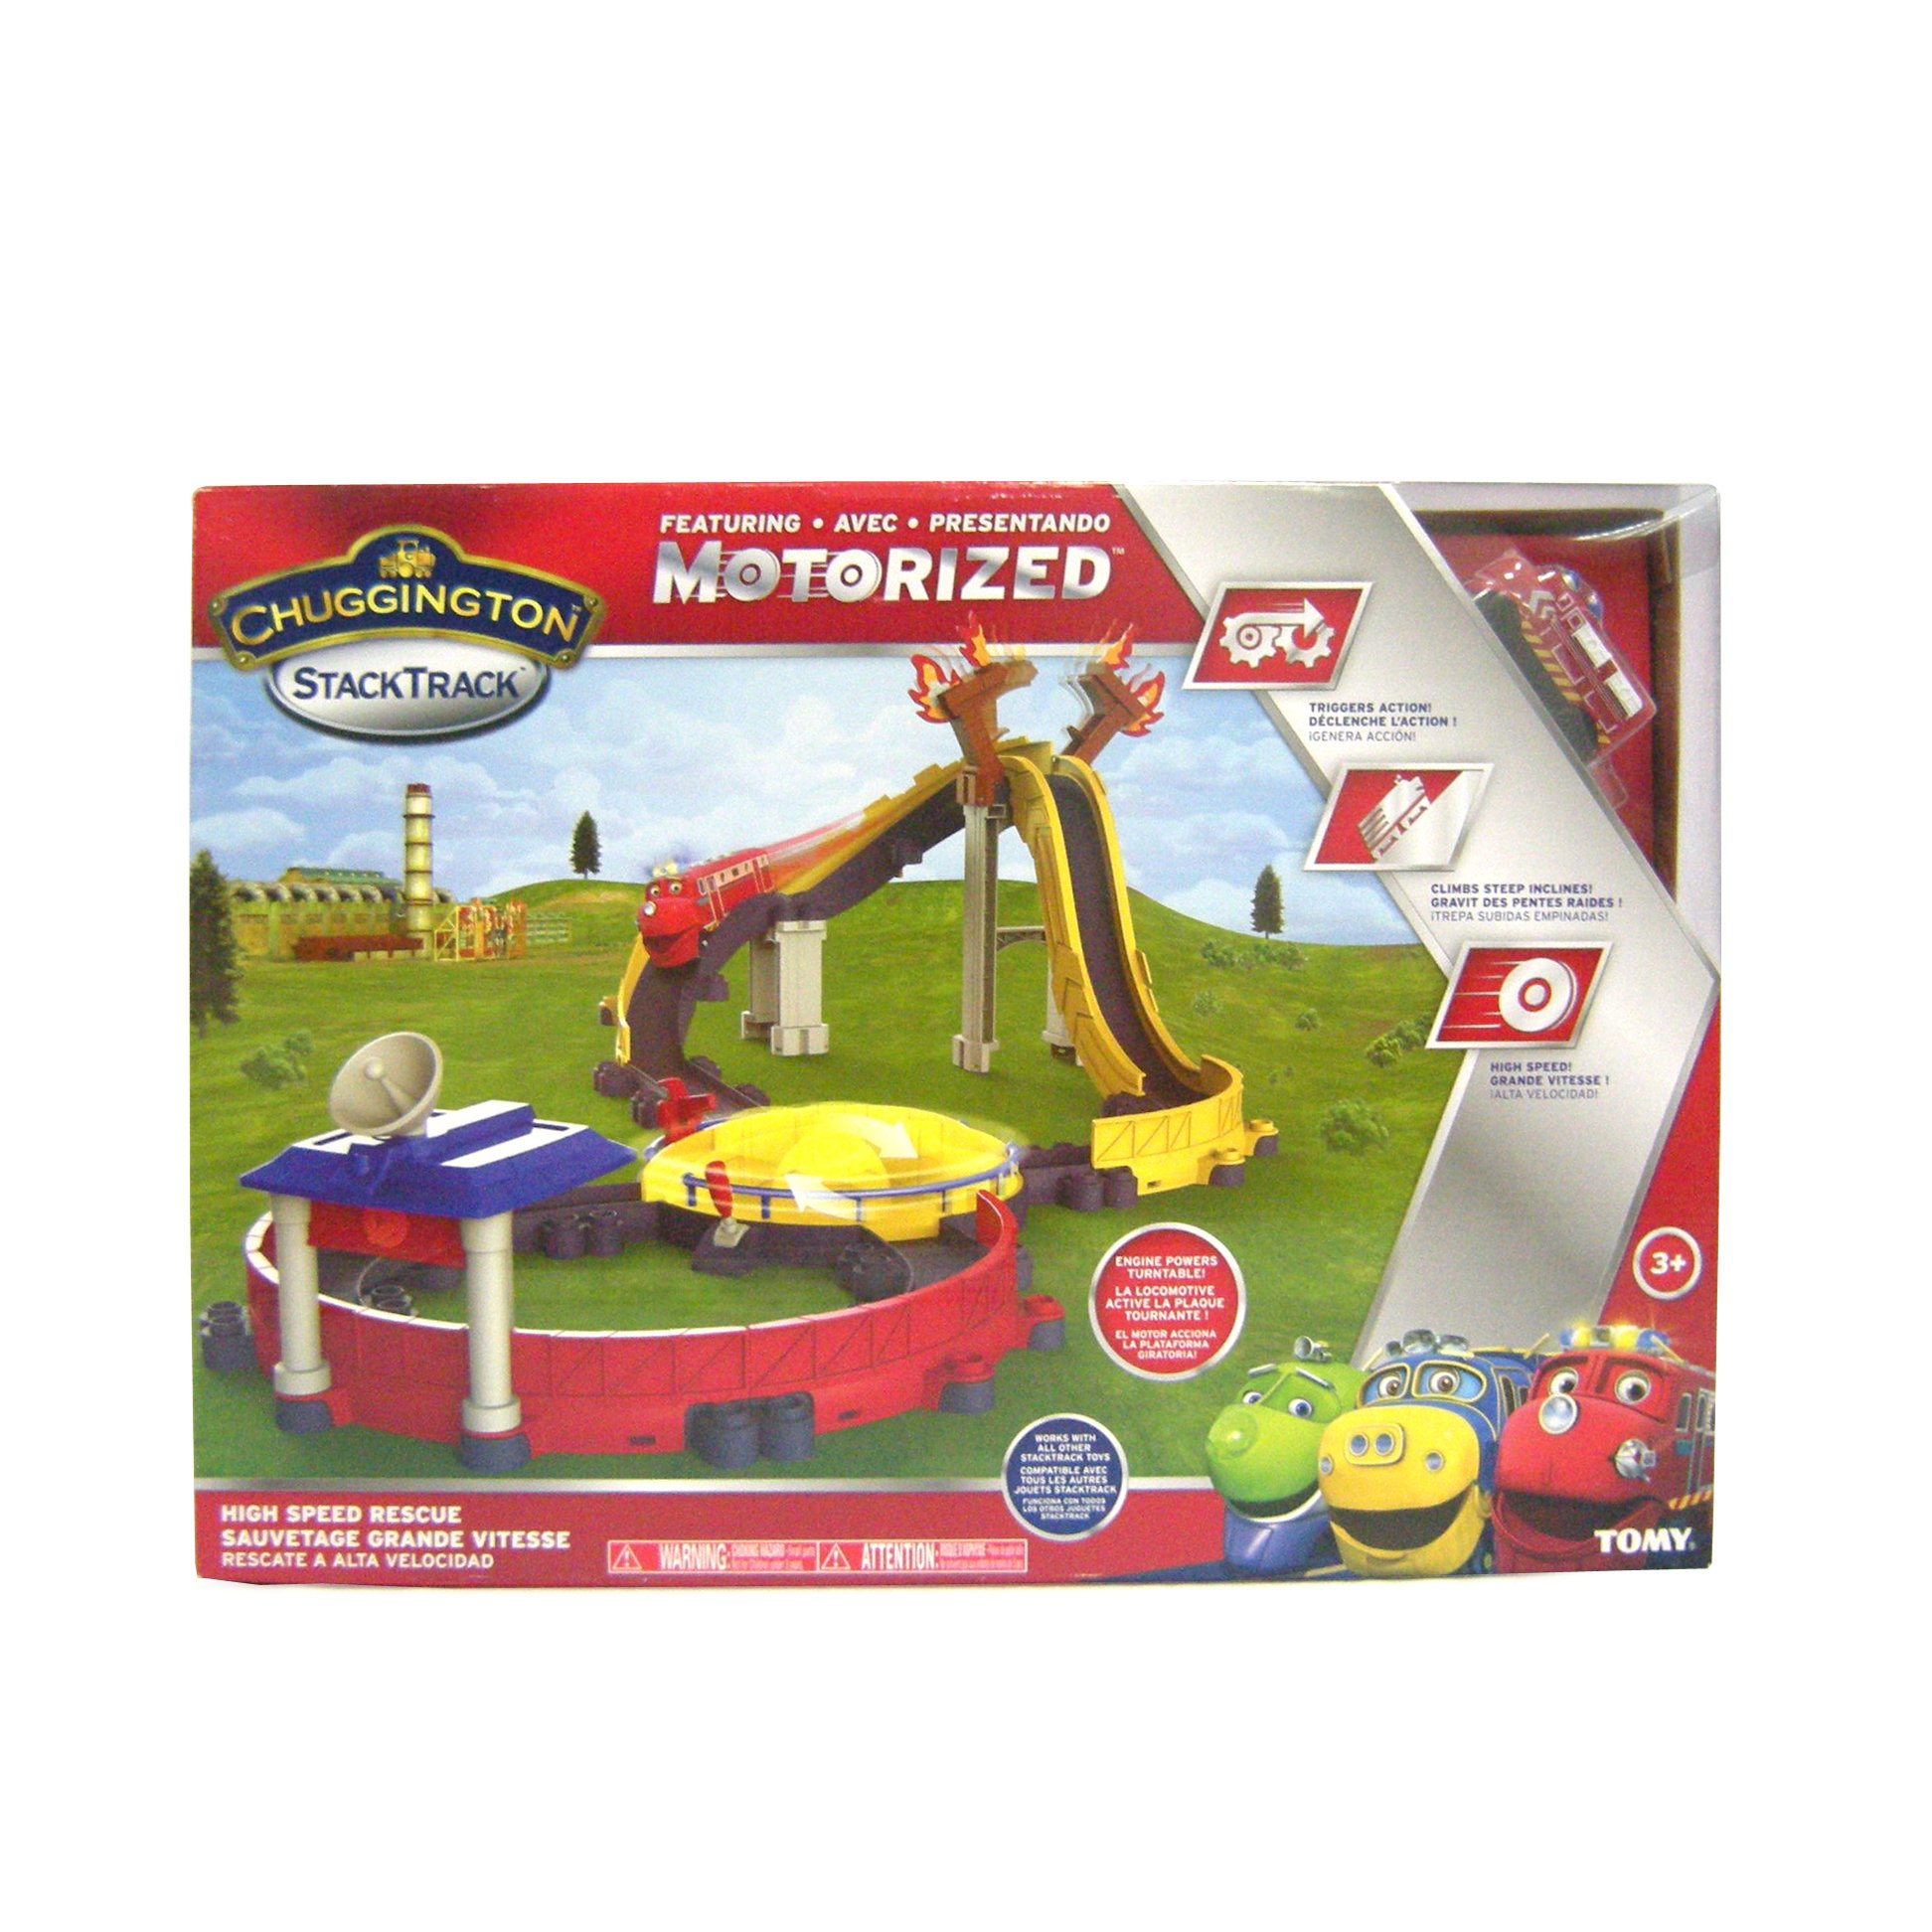 Chuggington StackTrack Motorized High Speed Rescue by TOMY (Image #7)